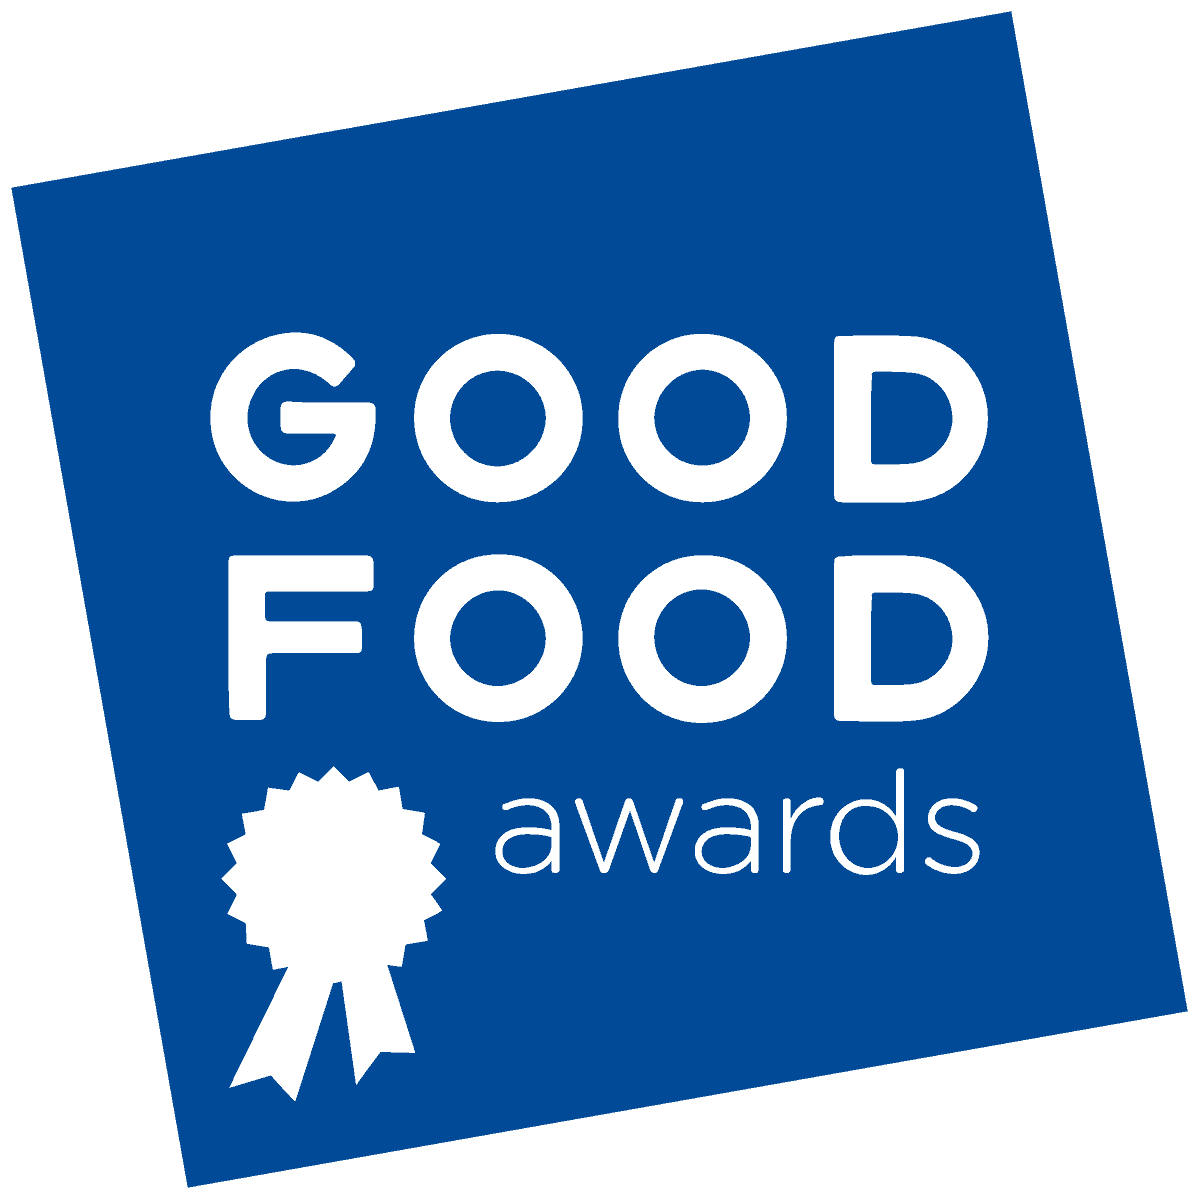 Good Food awards logo